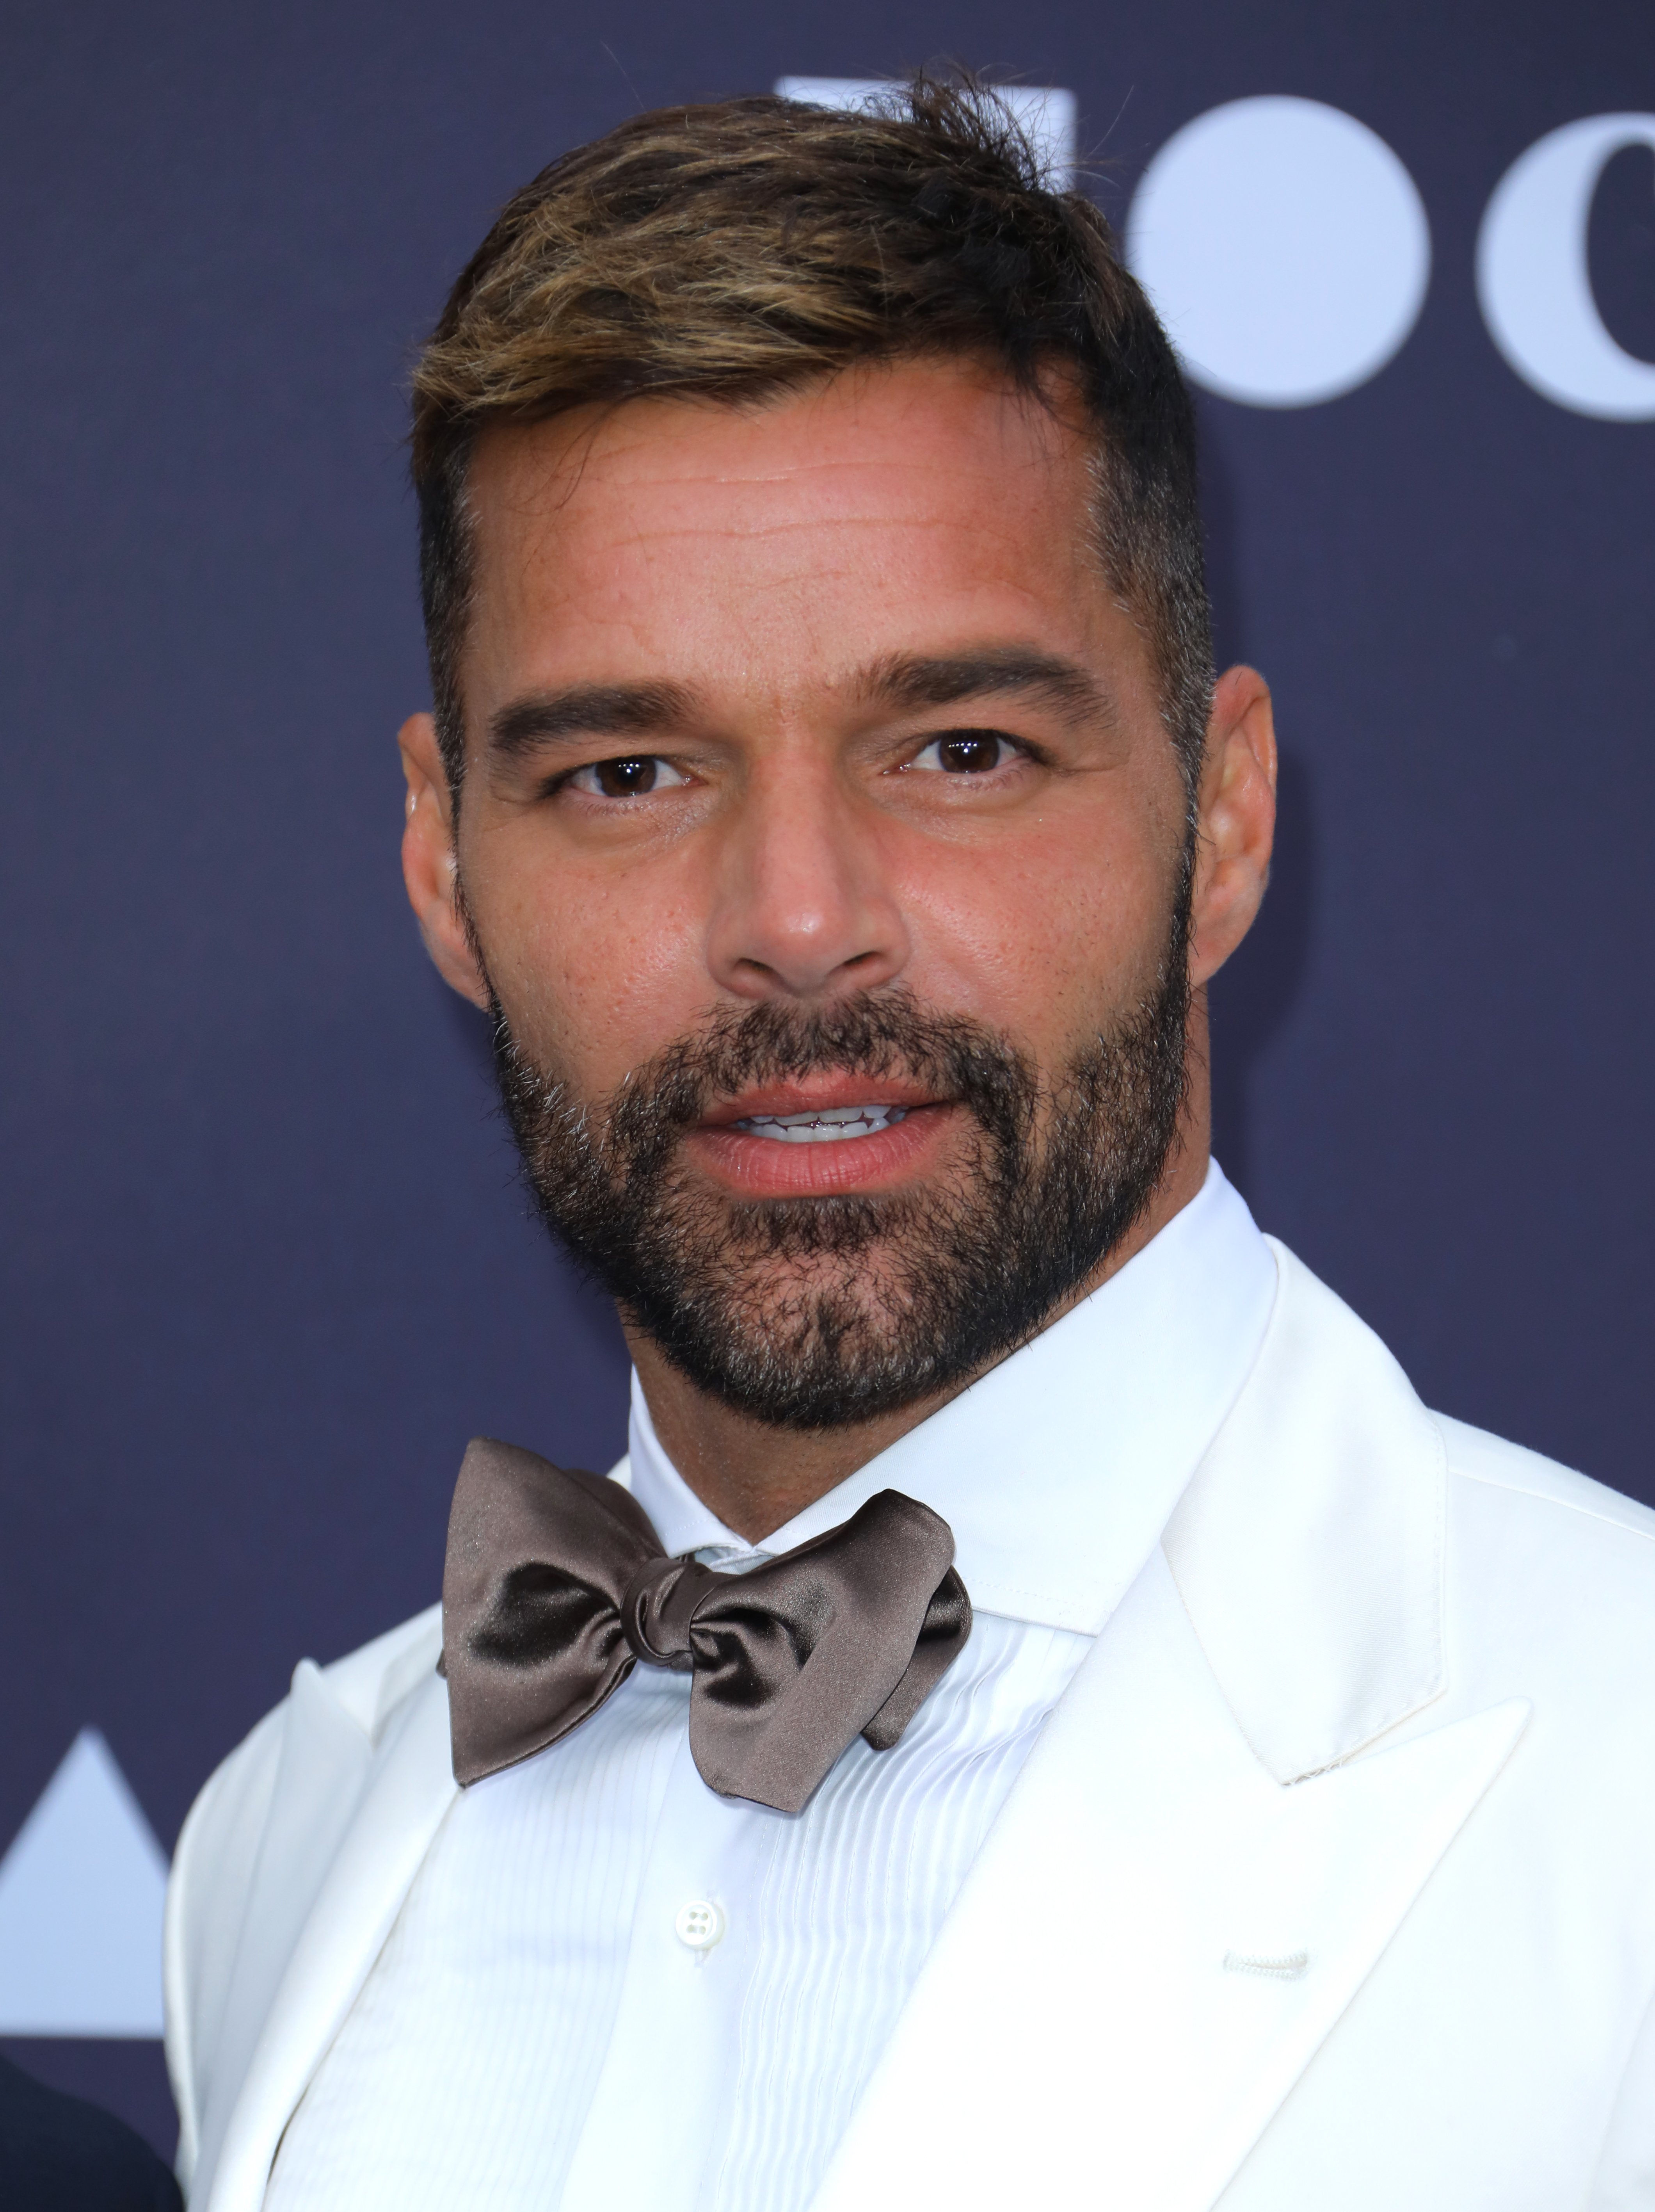 Ricky Martin attends the MOCA Benefit 2019 at The Geffen Contemporary at MOCA on May 18, 2019 in Los Angeles, California   Photo: Getty Images